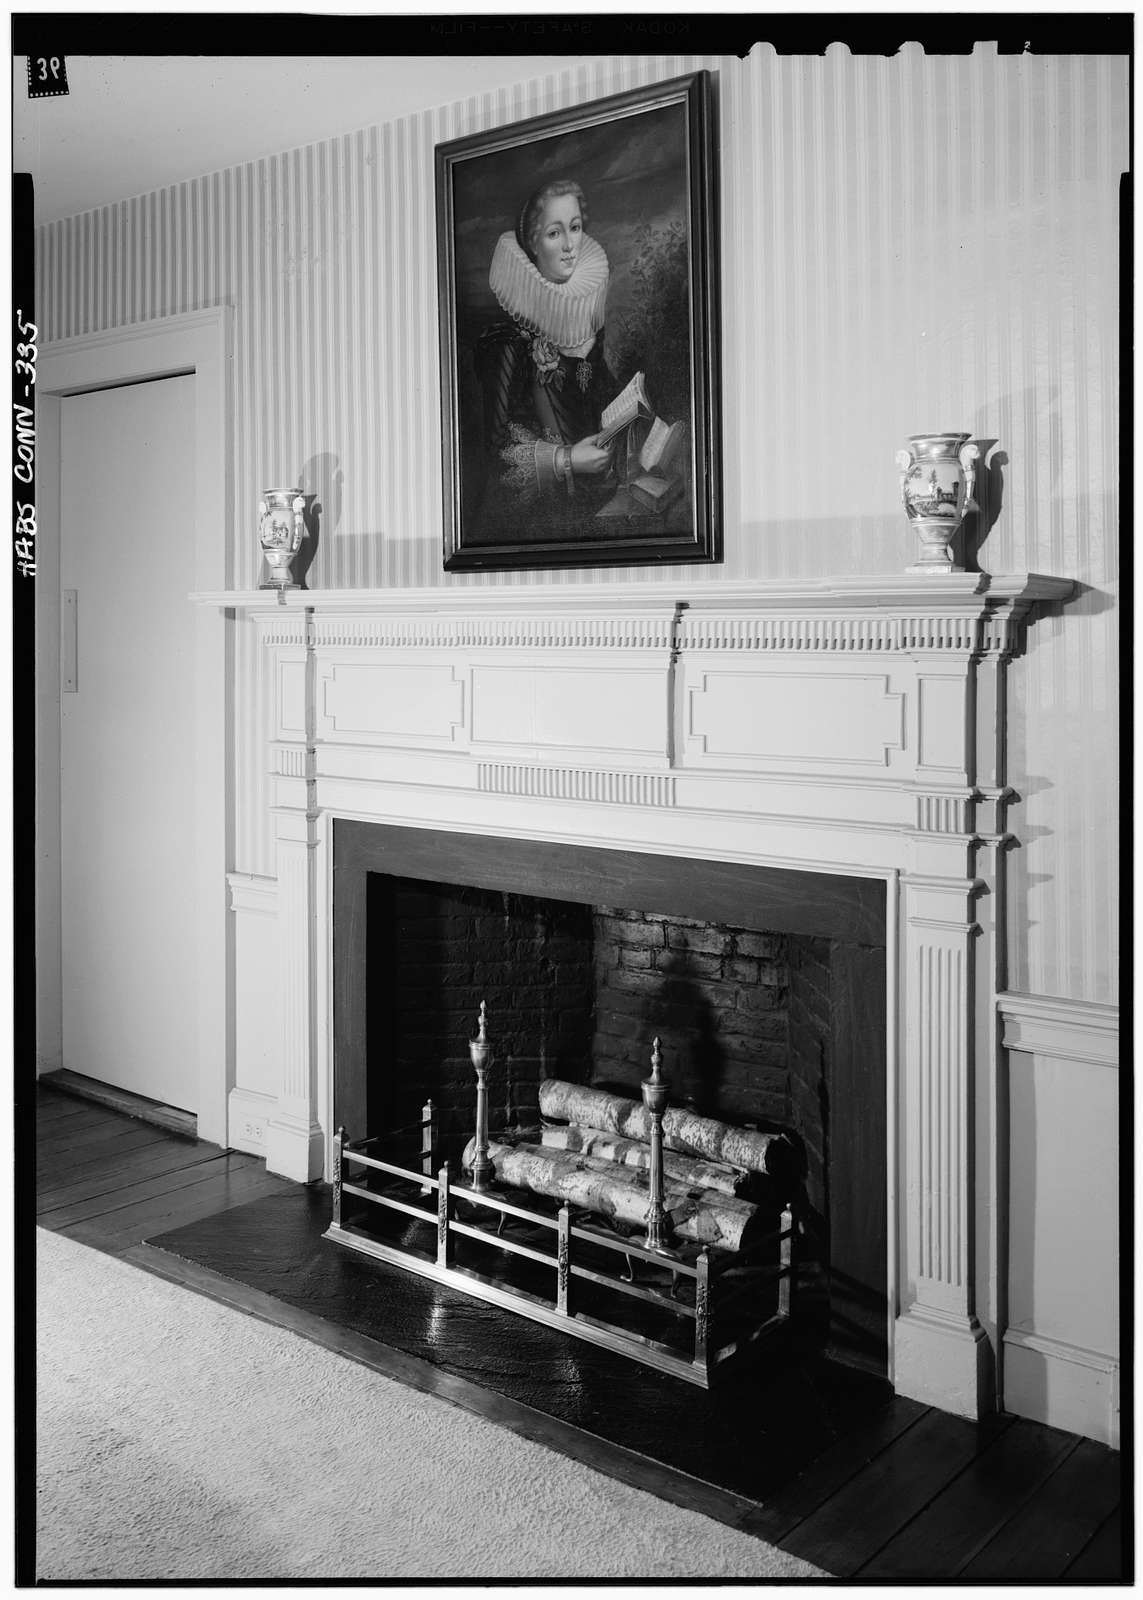 Henry Sturges House, 608 Harbor Road, Southport, Fairfield County, CT